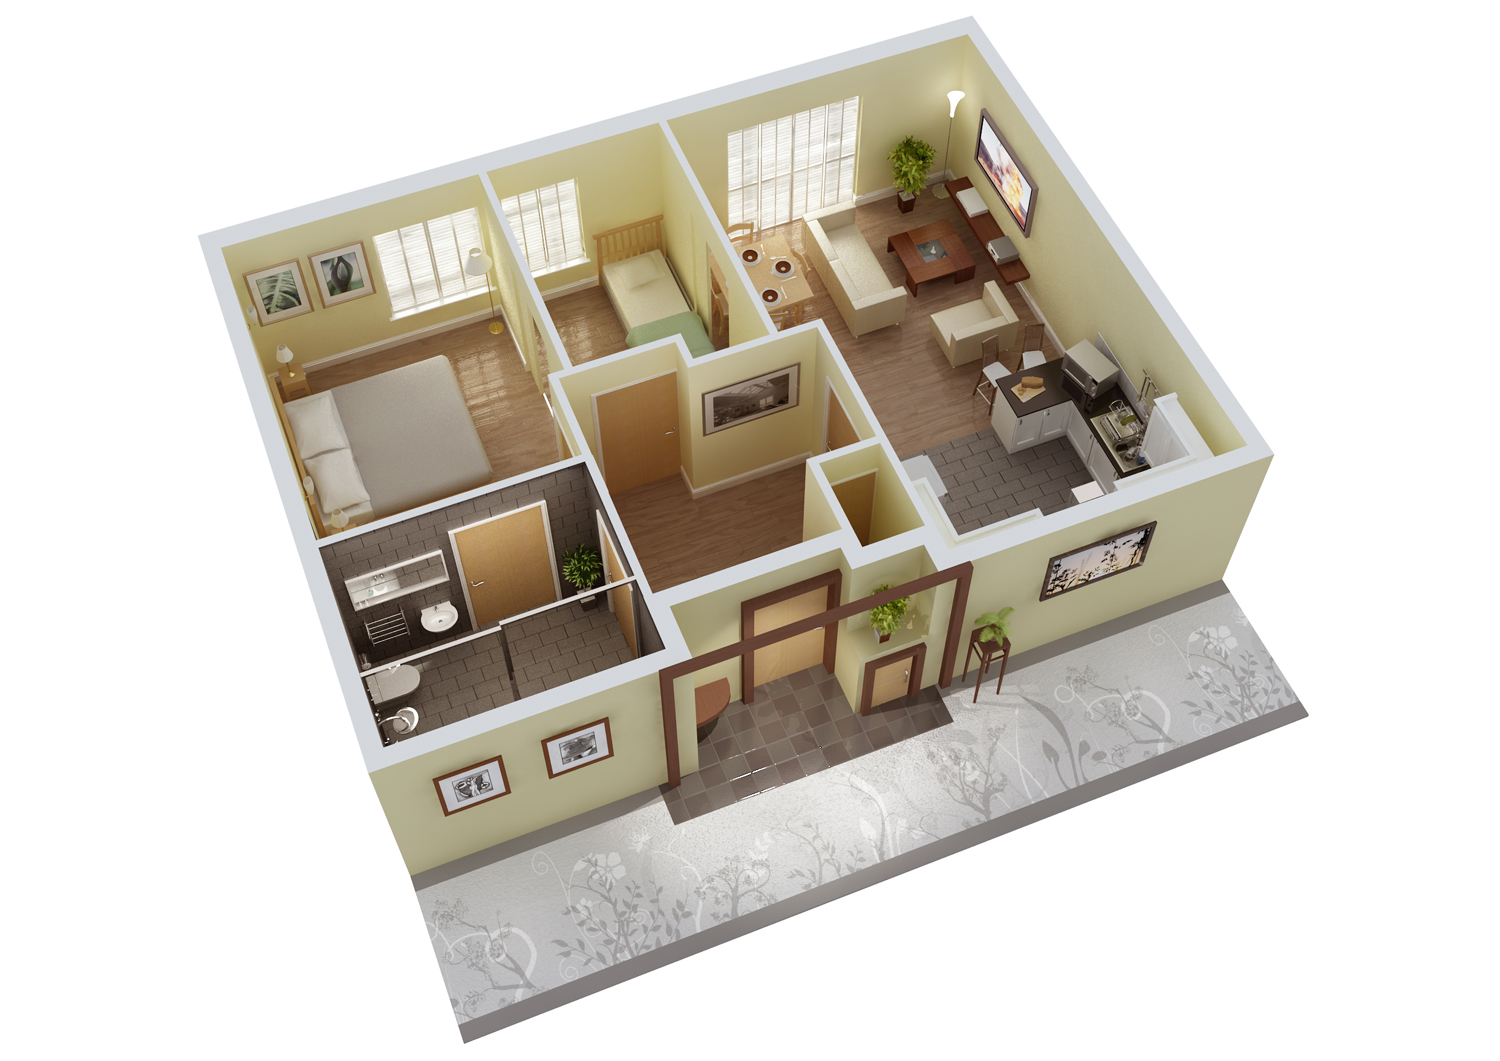 Mathematics resources project 3d floor plan for One floor house design plans 3d